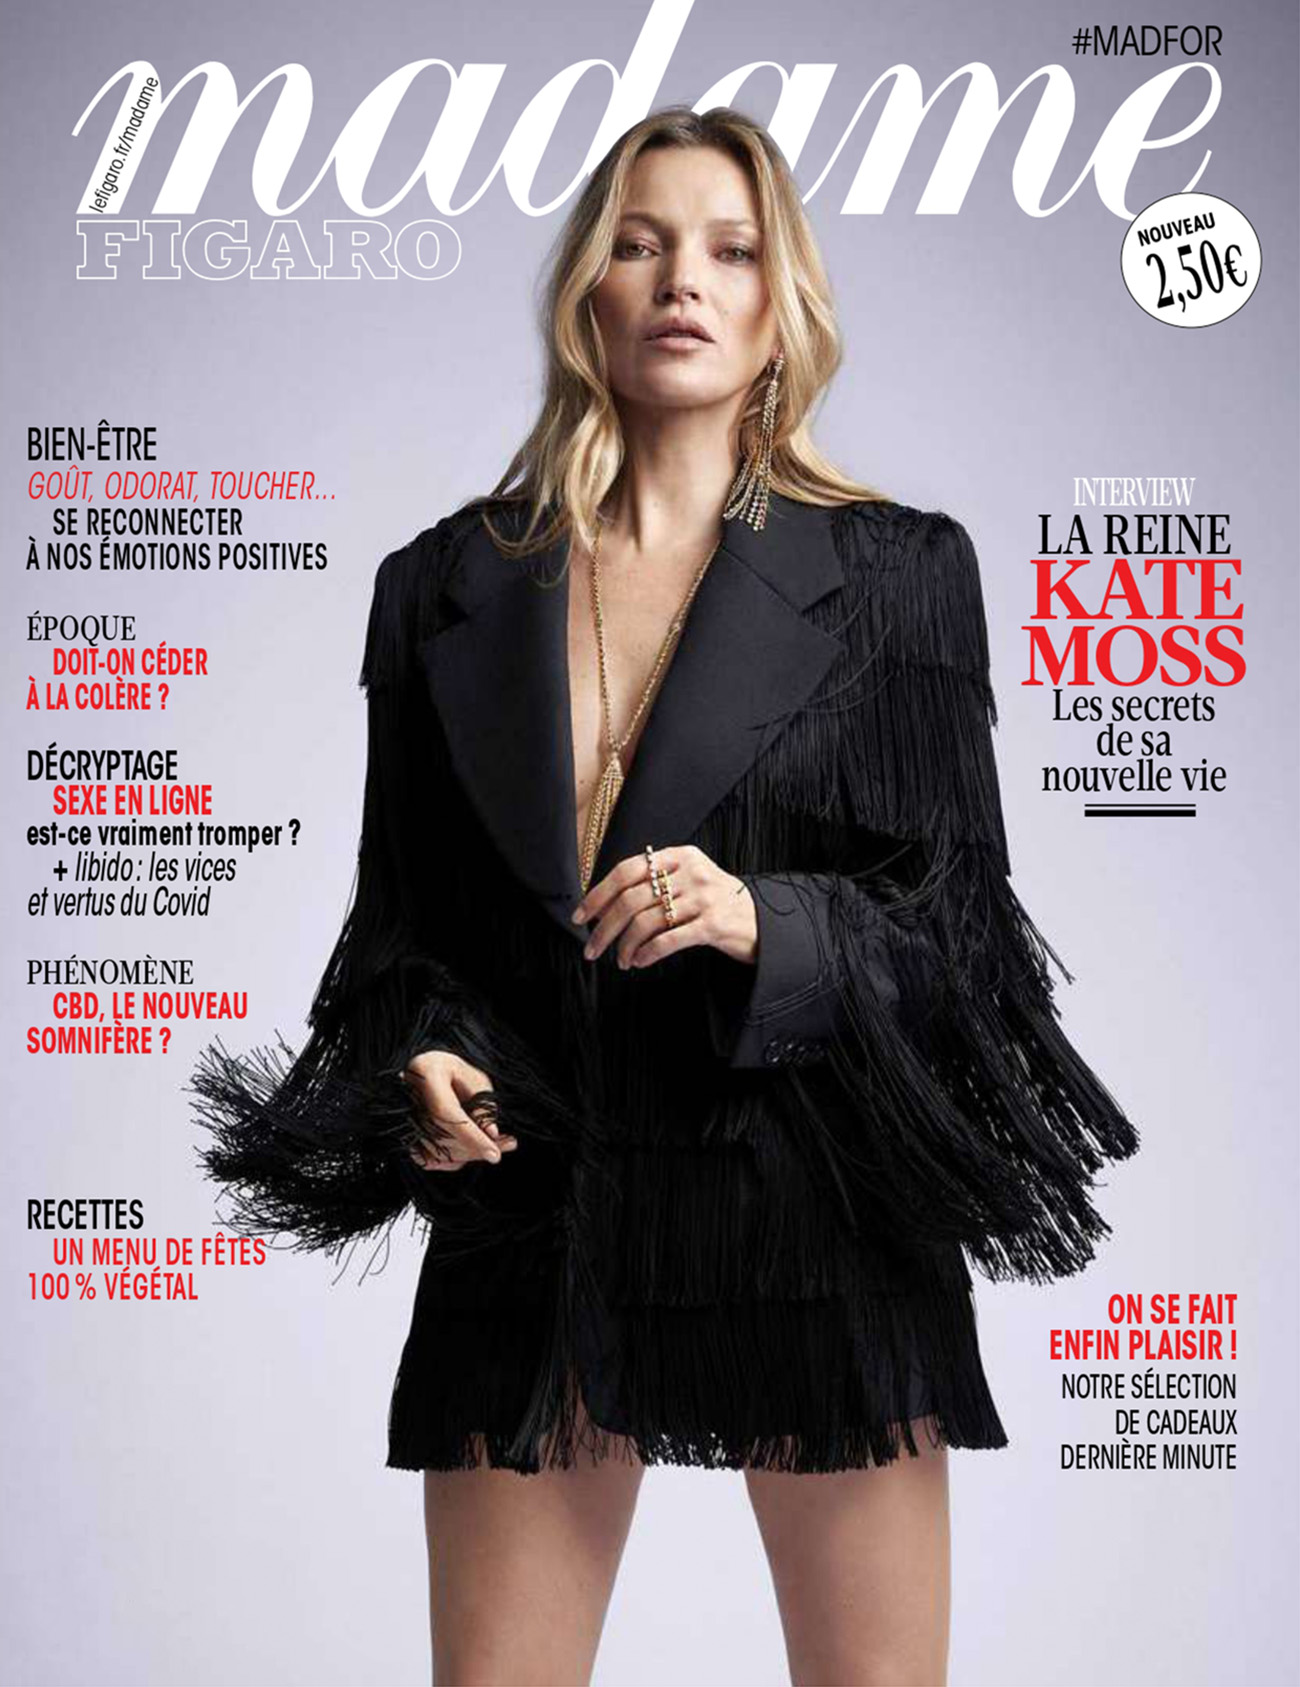 Kate Moss covers Madame Figaro December 4th, 2020 by Fred Meylan